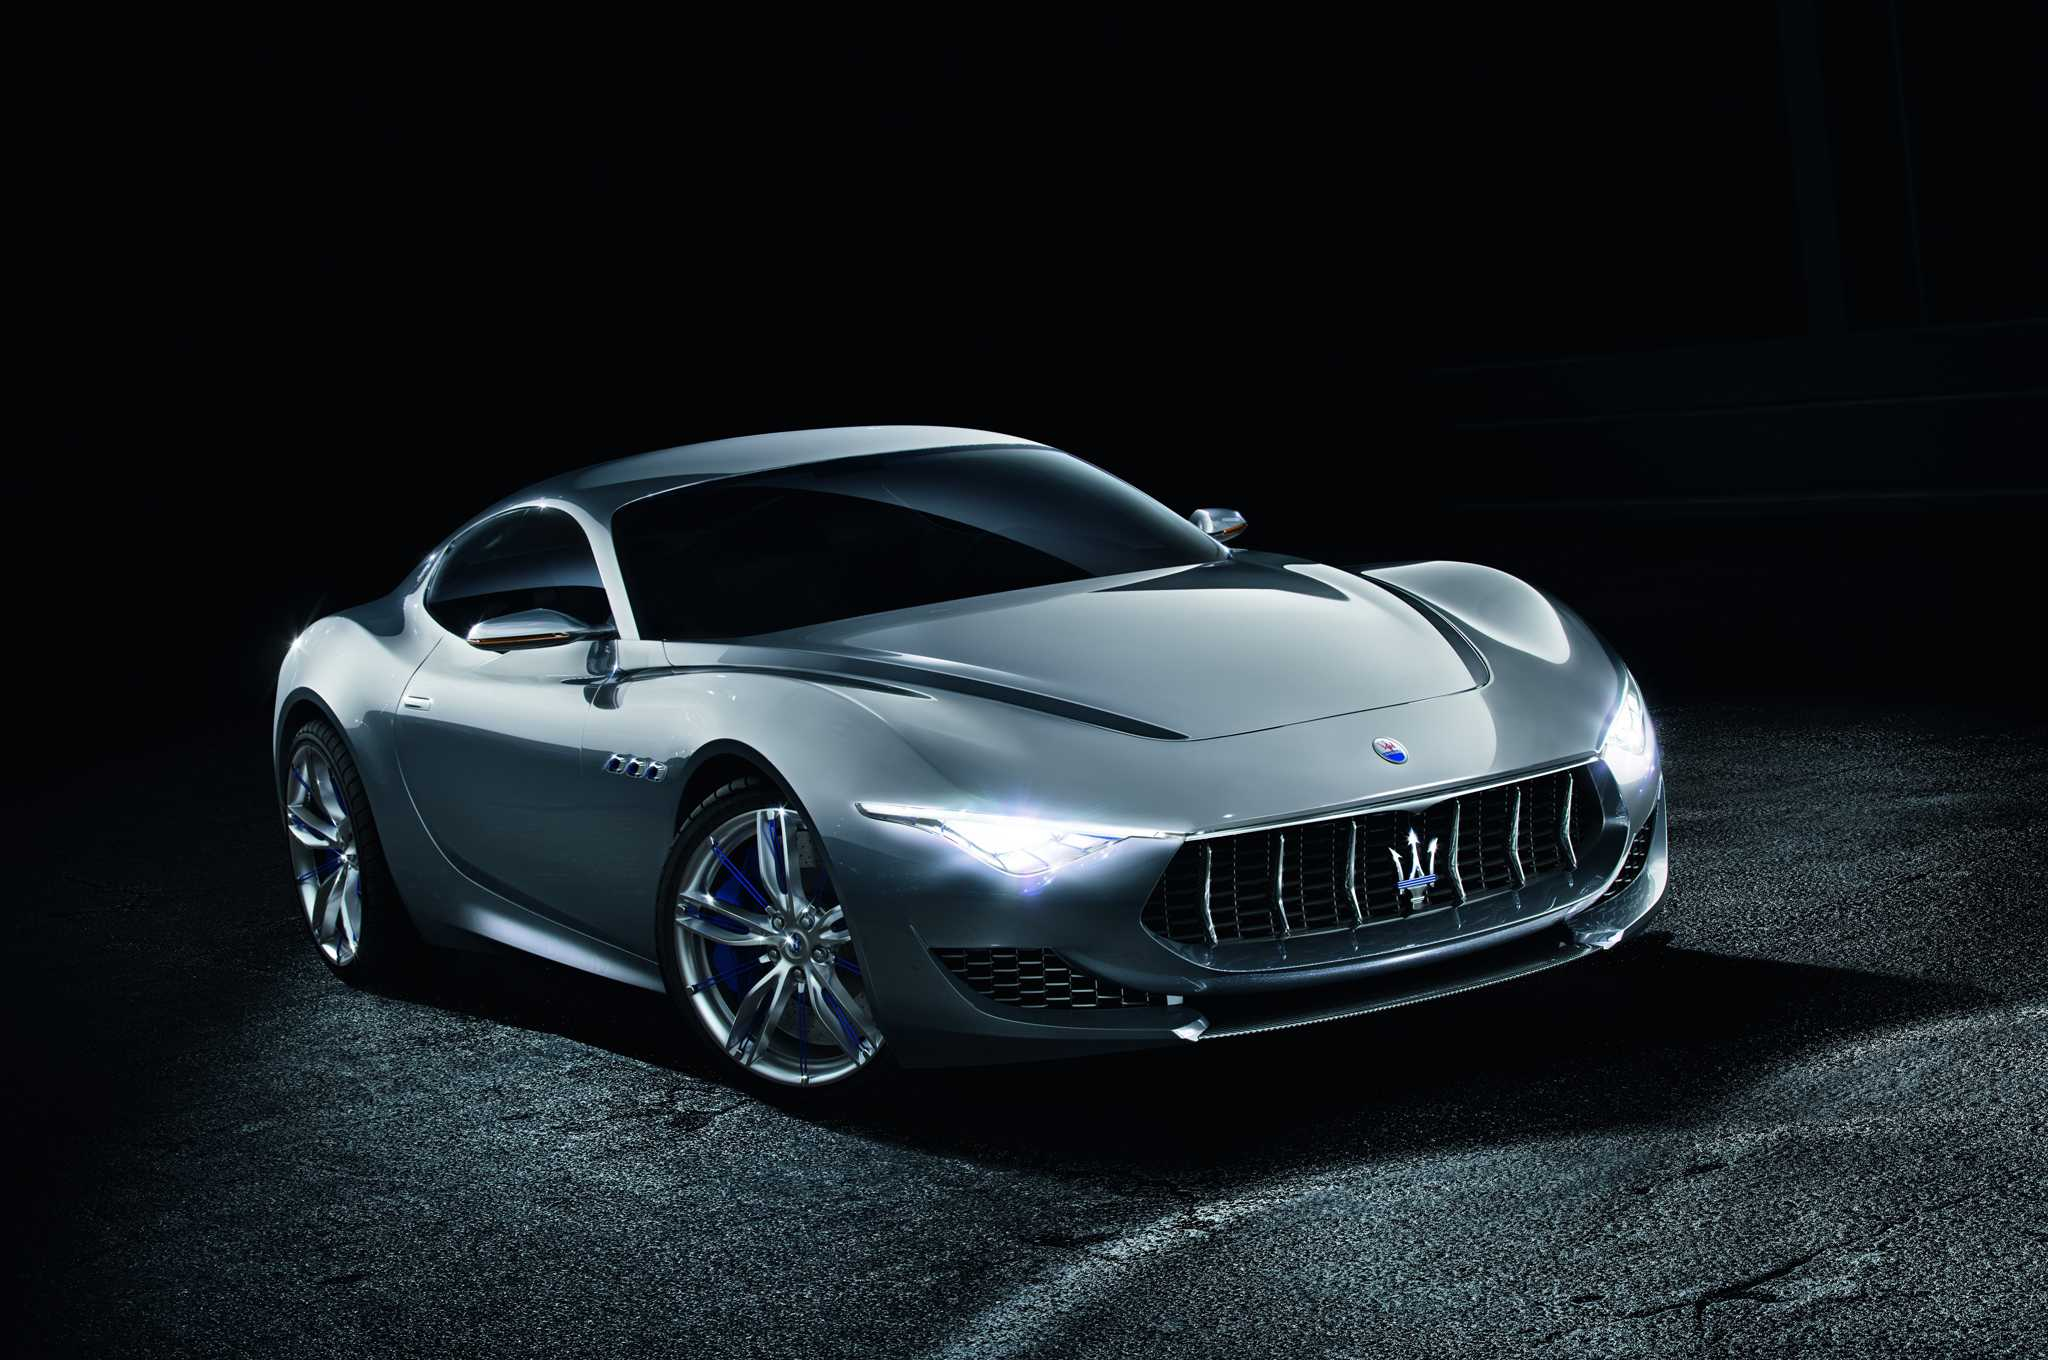 Maserati Planning New EV to Beat Tesla's Model 3, Slated for 2018 Launch